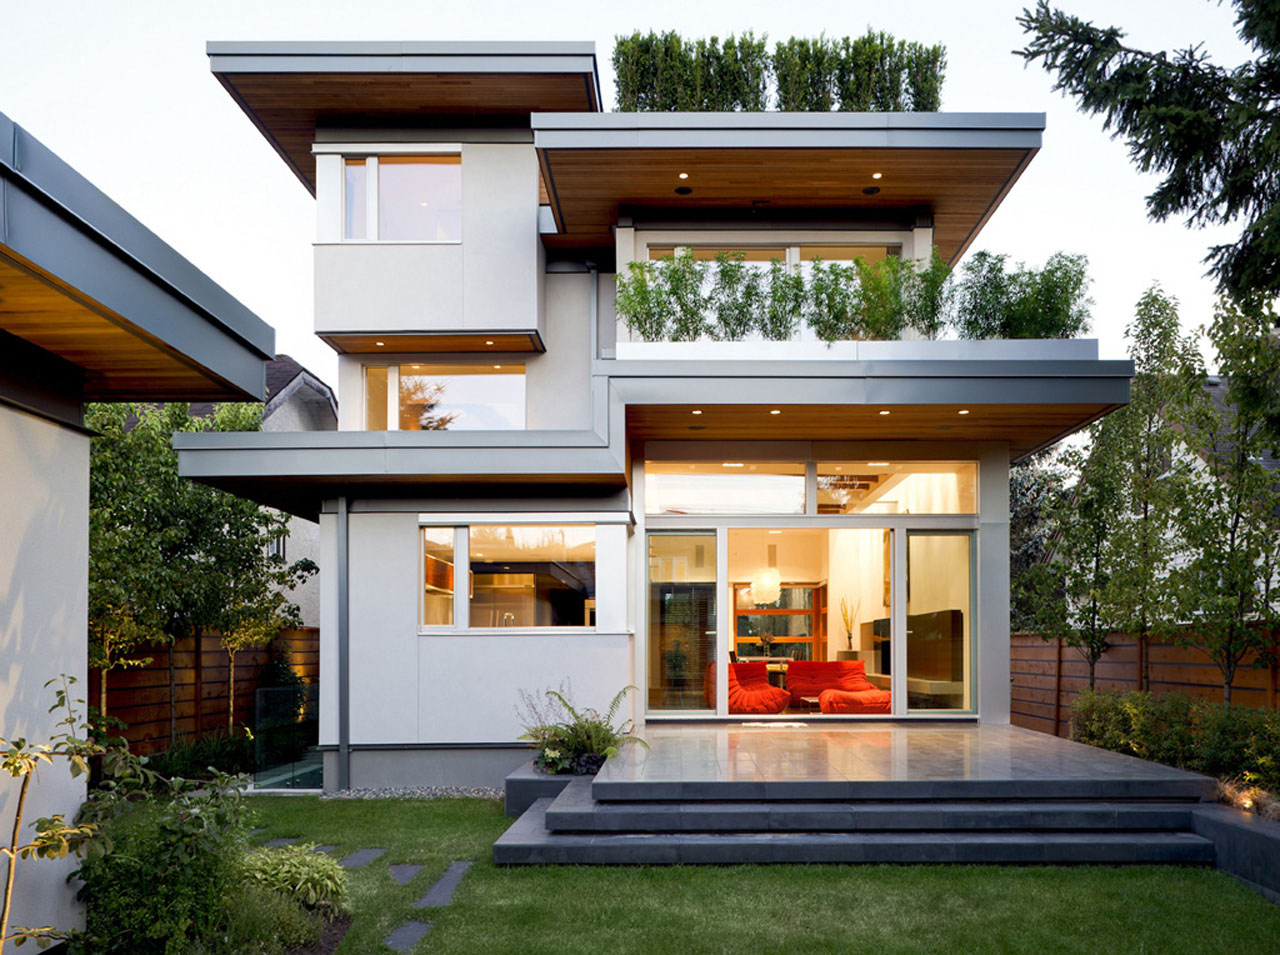 sustainable home design in vancouver - Home Design Pictures